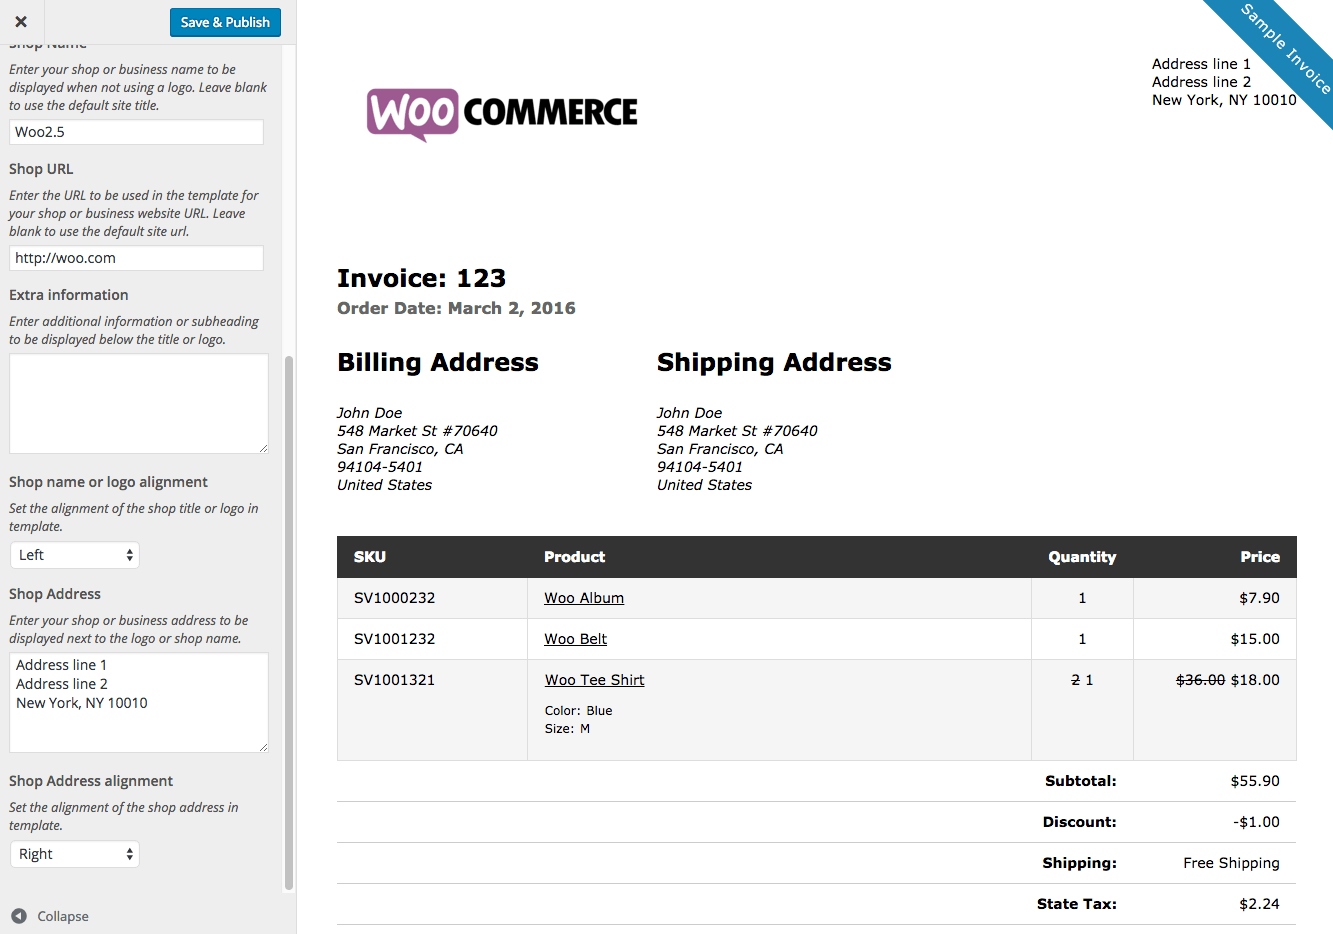 Modaoxus  Pleasing Print Invoices Amp Packing Lists  Woocommerce With Likable Woocommerce Print Invoices  Packing Lists Customizer With Attractive Rental Receipt Pdf Also Scan And Save Receipts In Addition Party City Return Policy No Receipt And Receipt For Hot Wings As Well As Usps Return Receipt Form Additionally Bill And Receipt Scanner From Woocommercecom With Modaoxus  Likable Print Invoices Amp Packing Lists  Woocommerce With Attractive Woocommerce Print Invoices  Packing Lists Customizer And Pleasing Rental Receipt Pdf Also Scan And Save Receipts In Addition Party City Return Policy No Receipt From Woocommercecom